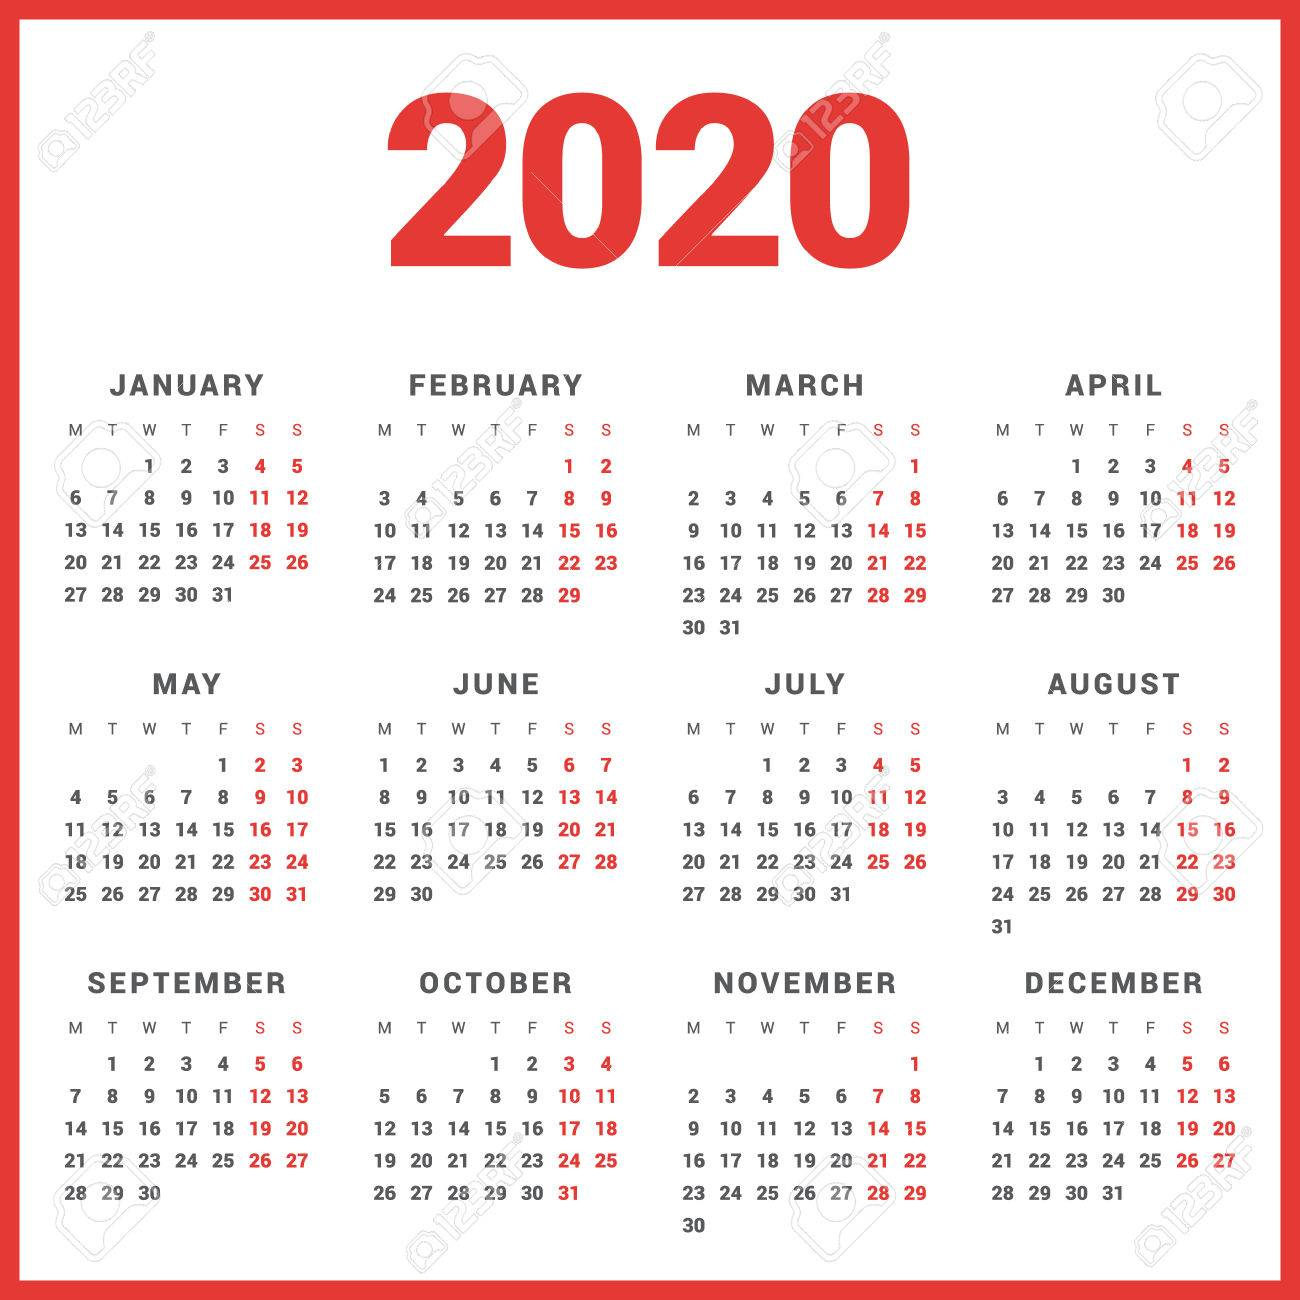 Modello Calendario 2020.Calendar For 2020 Year On White Background Week Starts Monday